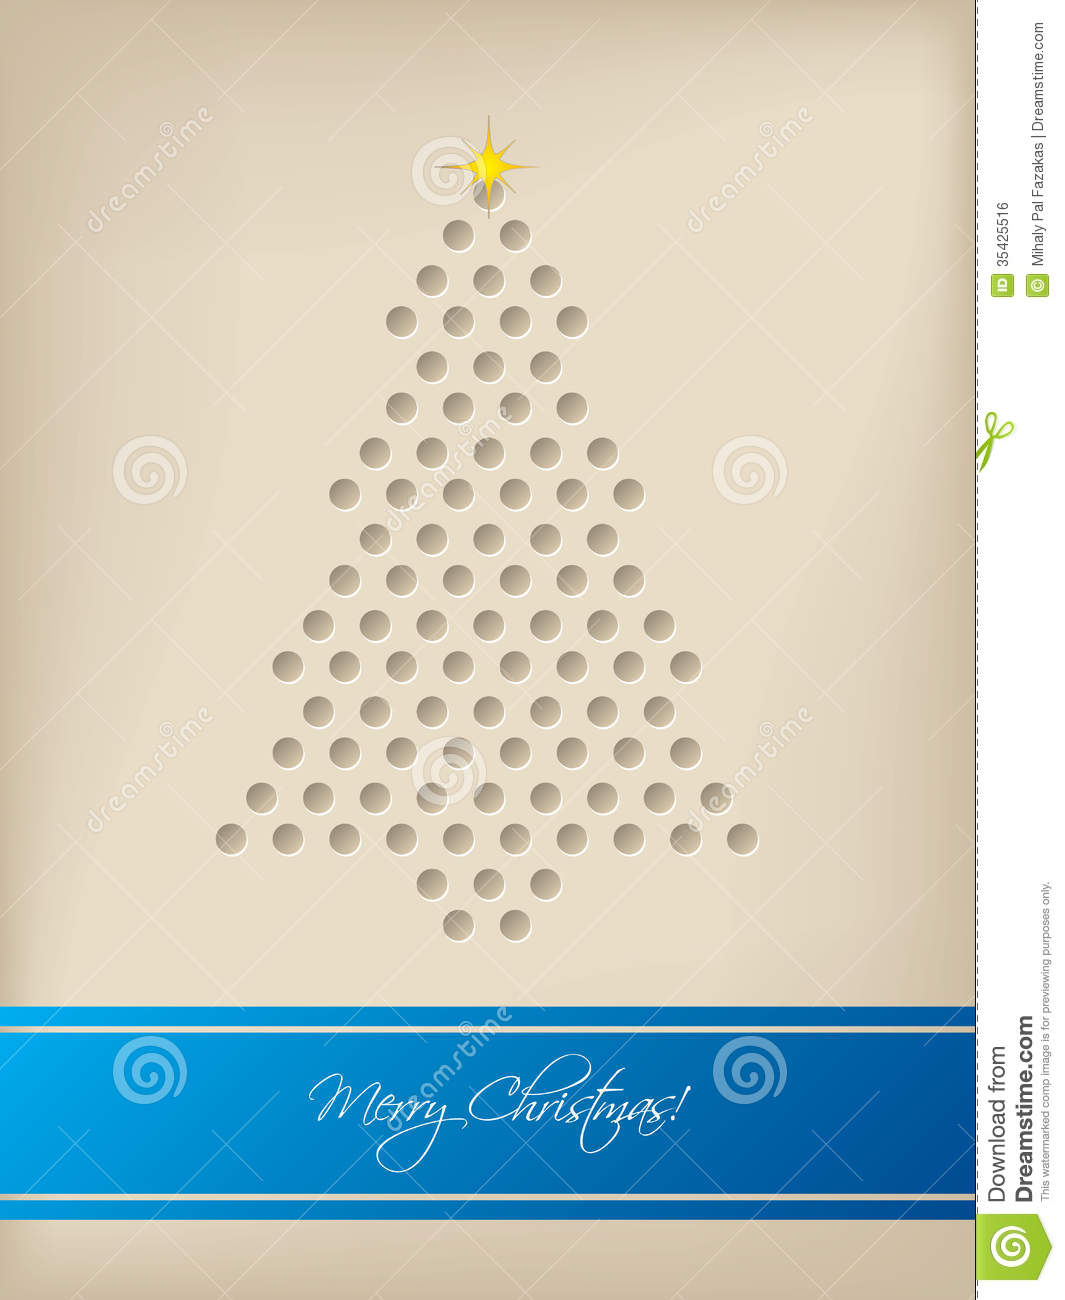 Cool christmas card with tree shaped dots stock vector download cool christmas card with tree shaped dots stock vector illustration of star cheerful m4hsunfo